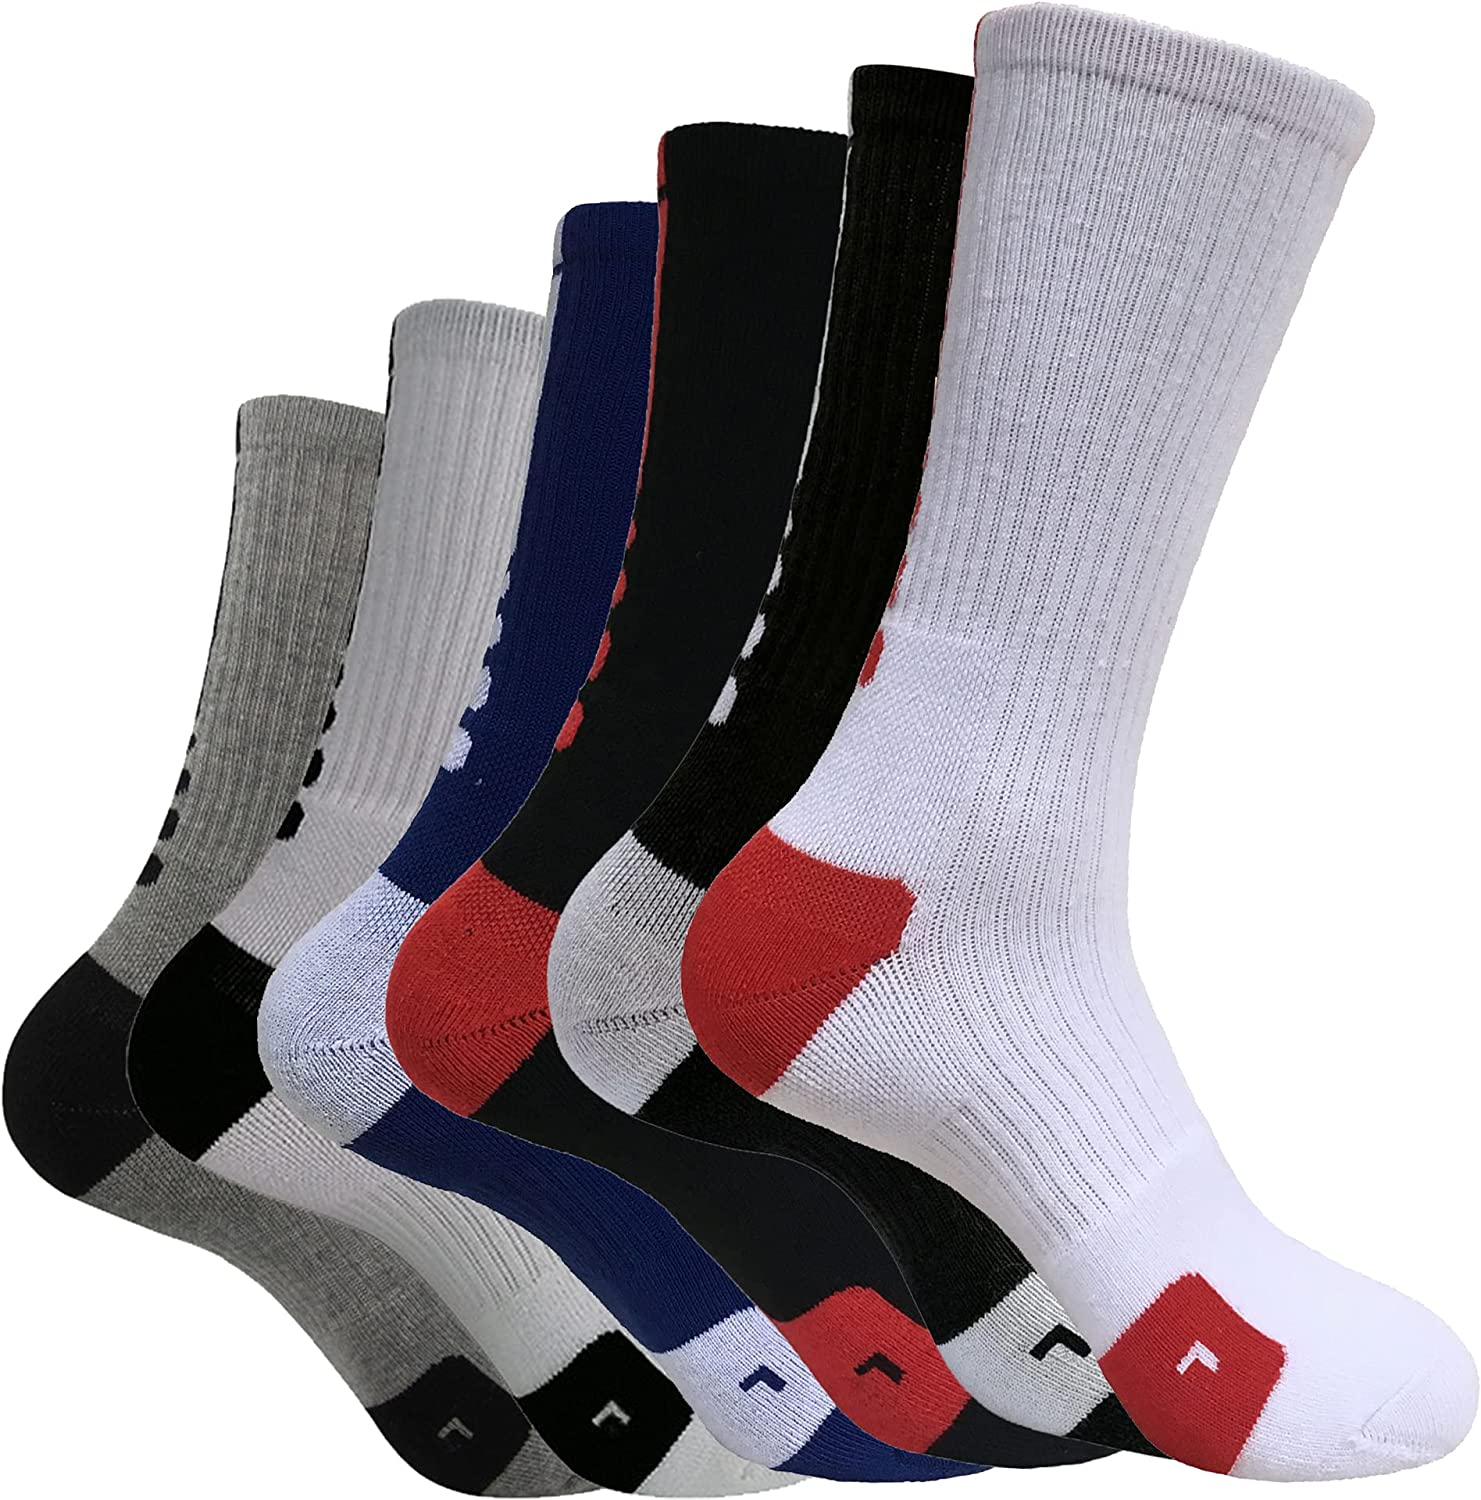 Youth Boy's Basketball Socks Ultra-Cheap Deals Arch Breathable Cushion Support Cre Brand Cheap Sale Venue